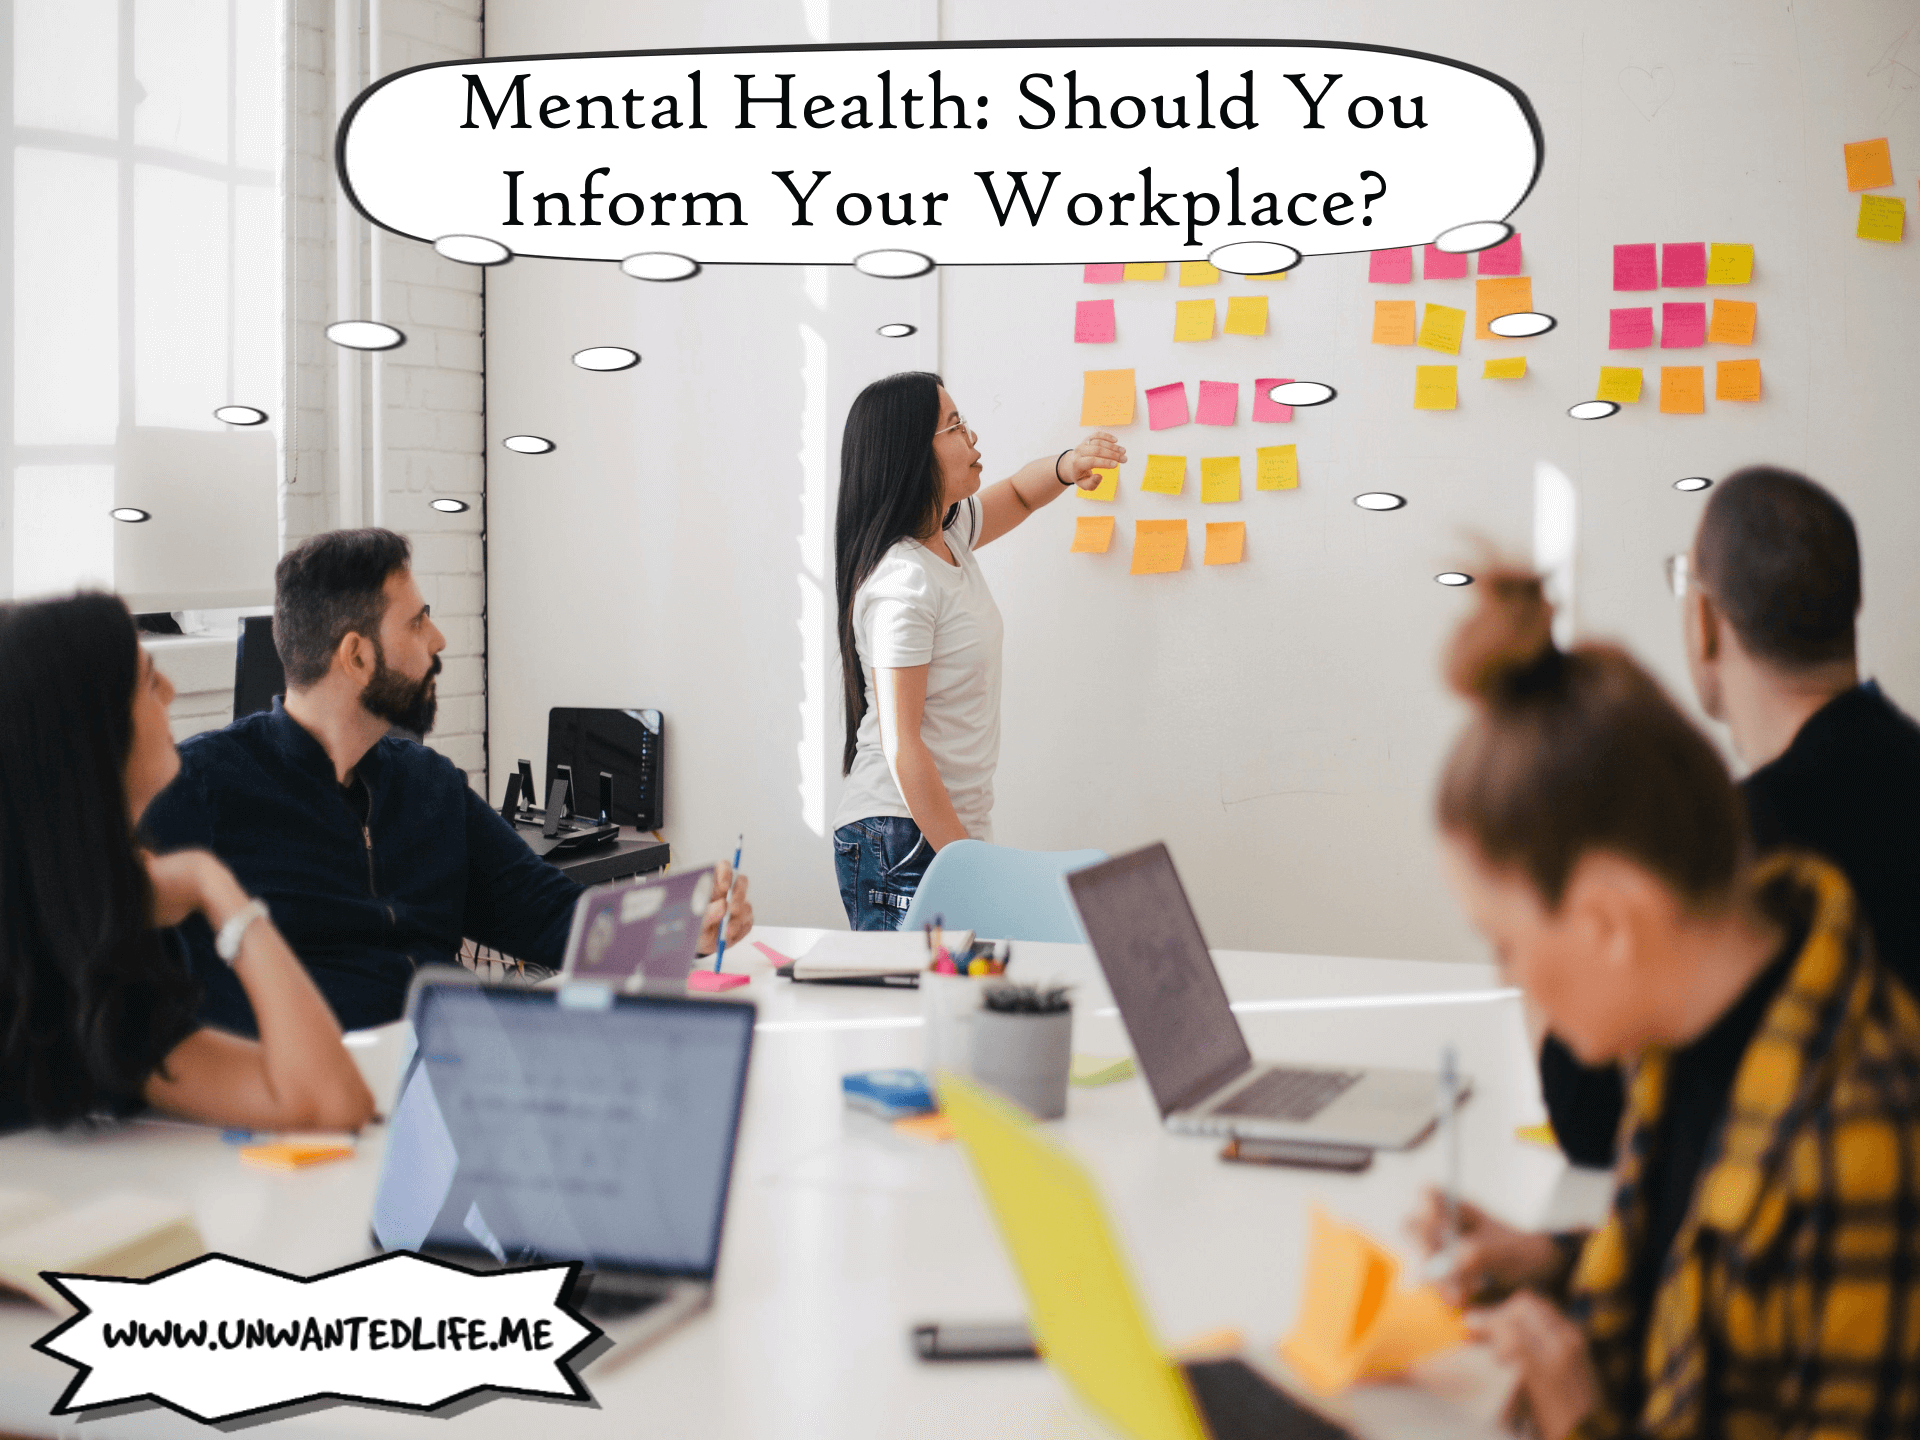 Mental Health Should You Inform Your Workplace - Wellbeing and Wellness